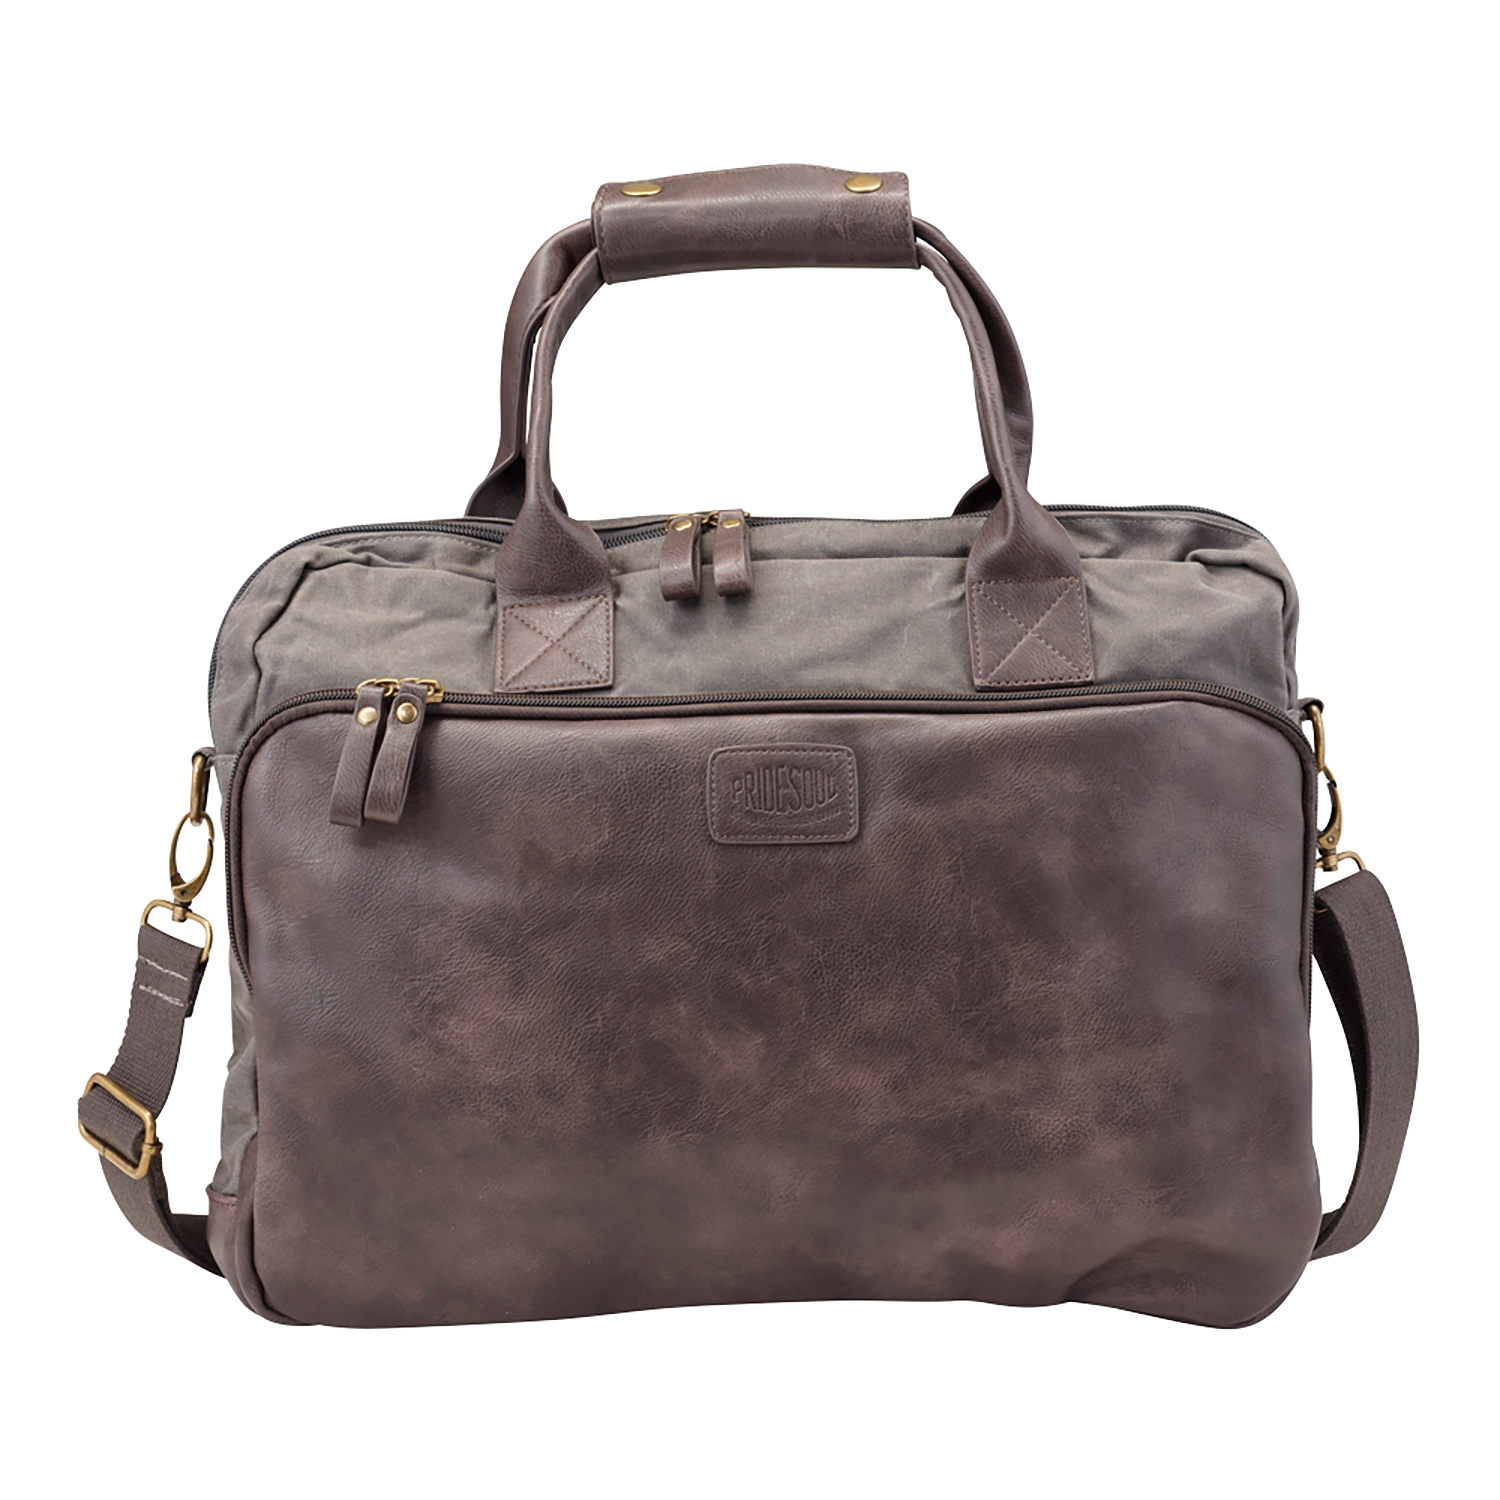 Bags & Cases Pride and Soul Mystify 15inch Laptop Bag Grey/Brown Ref 47302